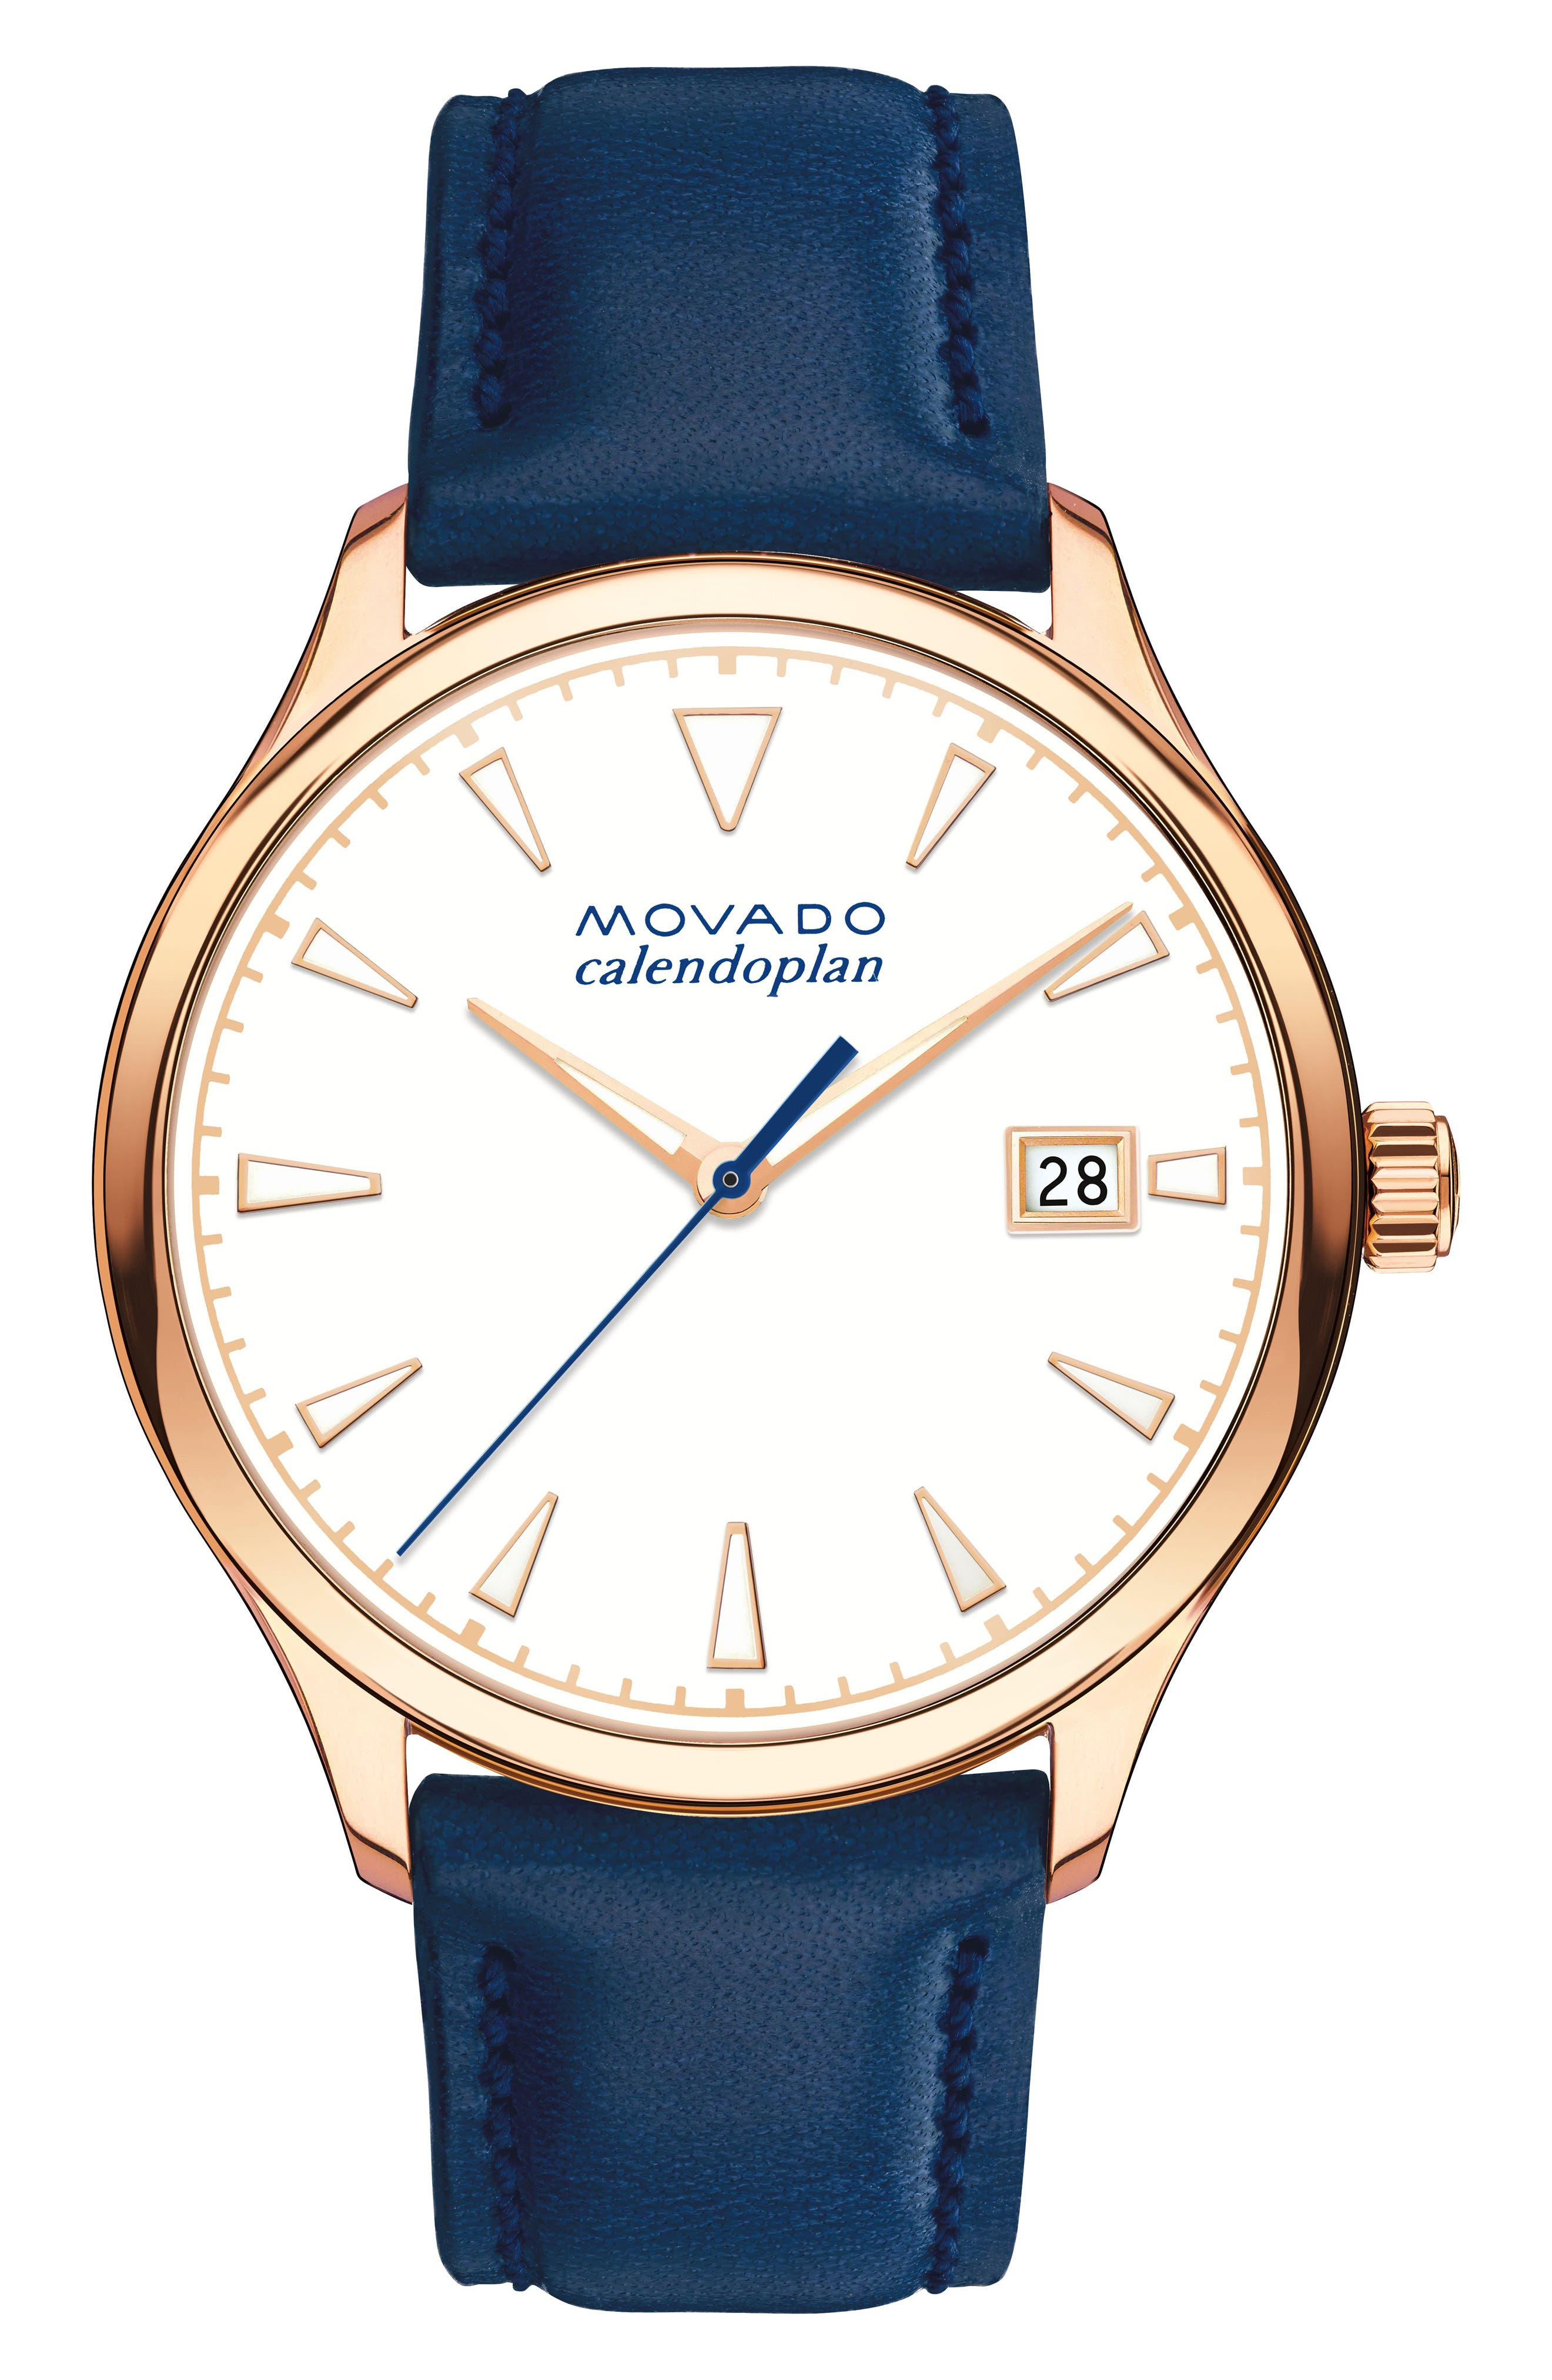 Main Image - Movado Heritage Calendoplan Leather Strap Watch, 36mm